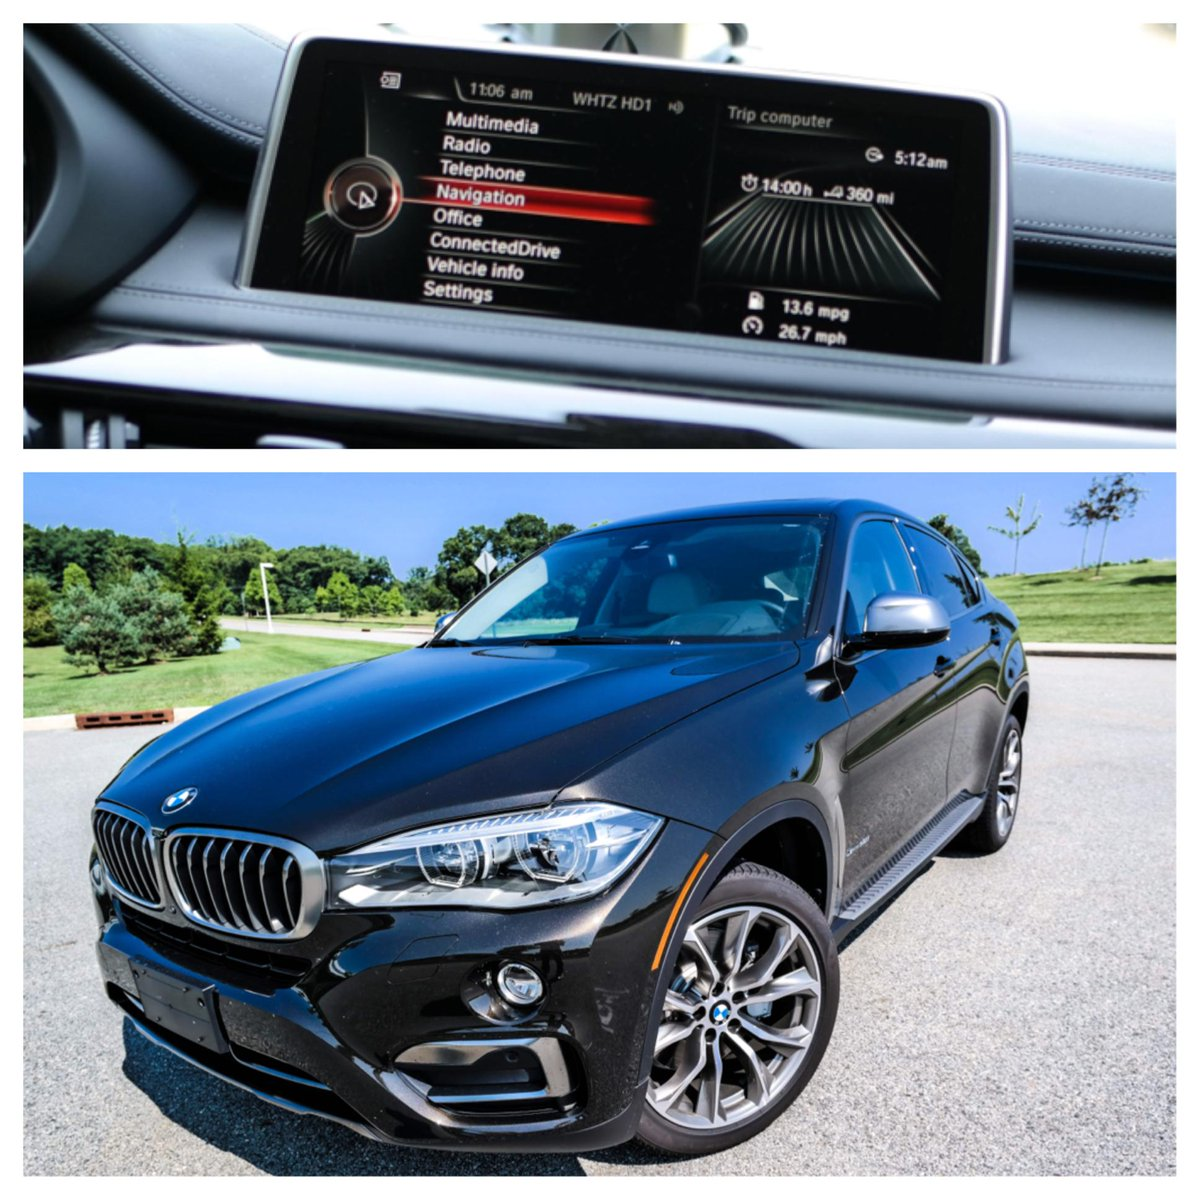 Bmw Usa On Twitter Now You Can Access Spotify Straight From Bmw